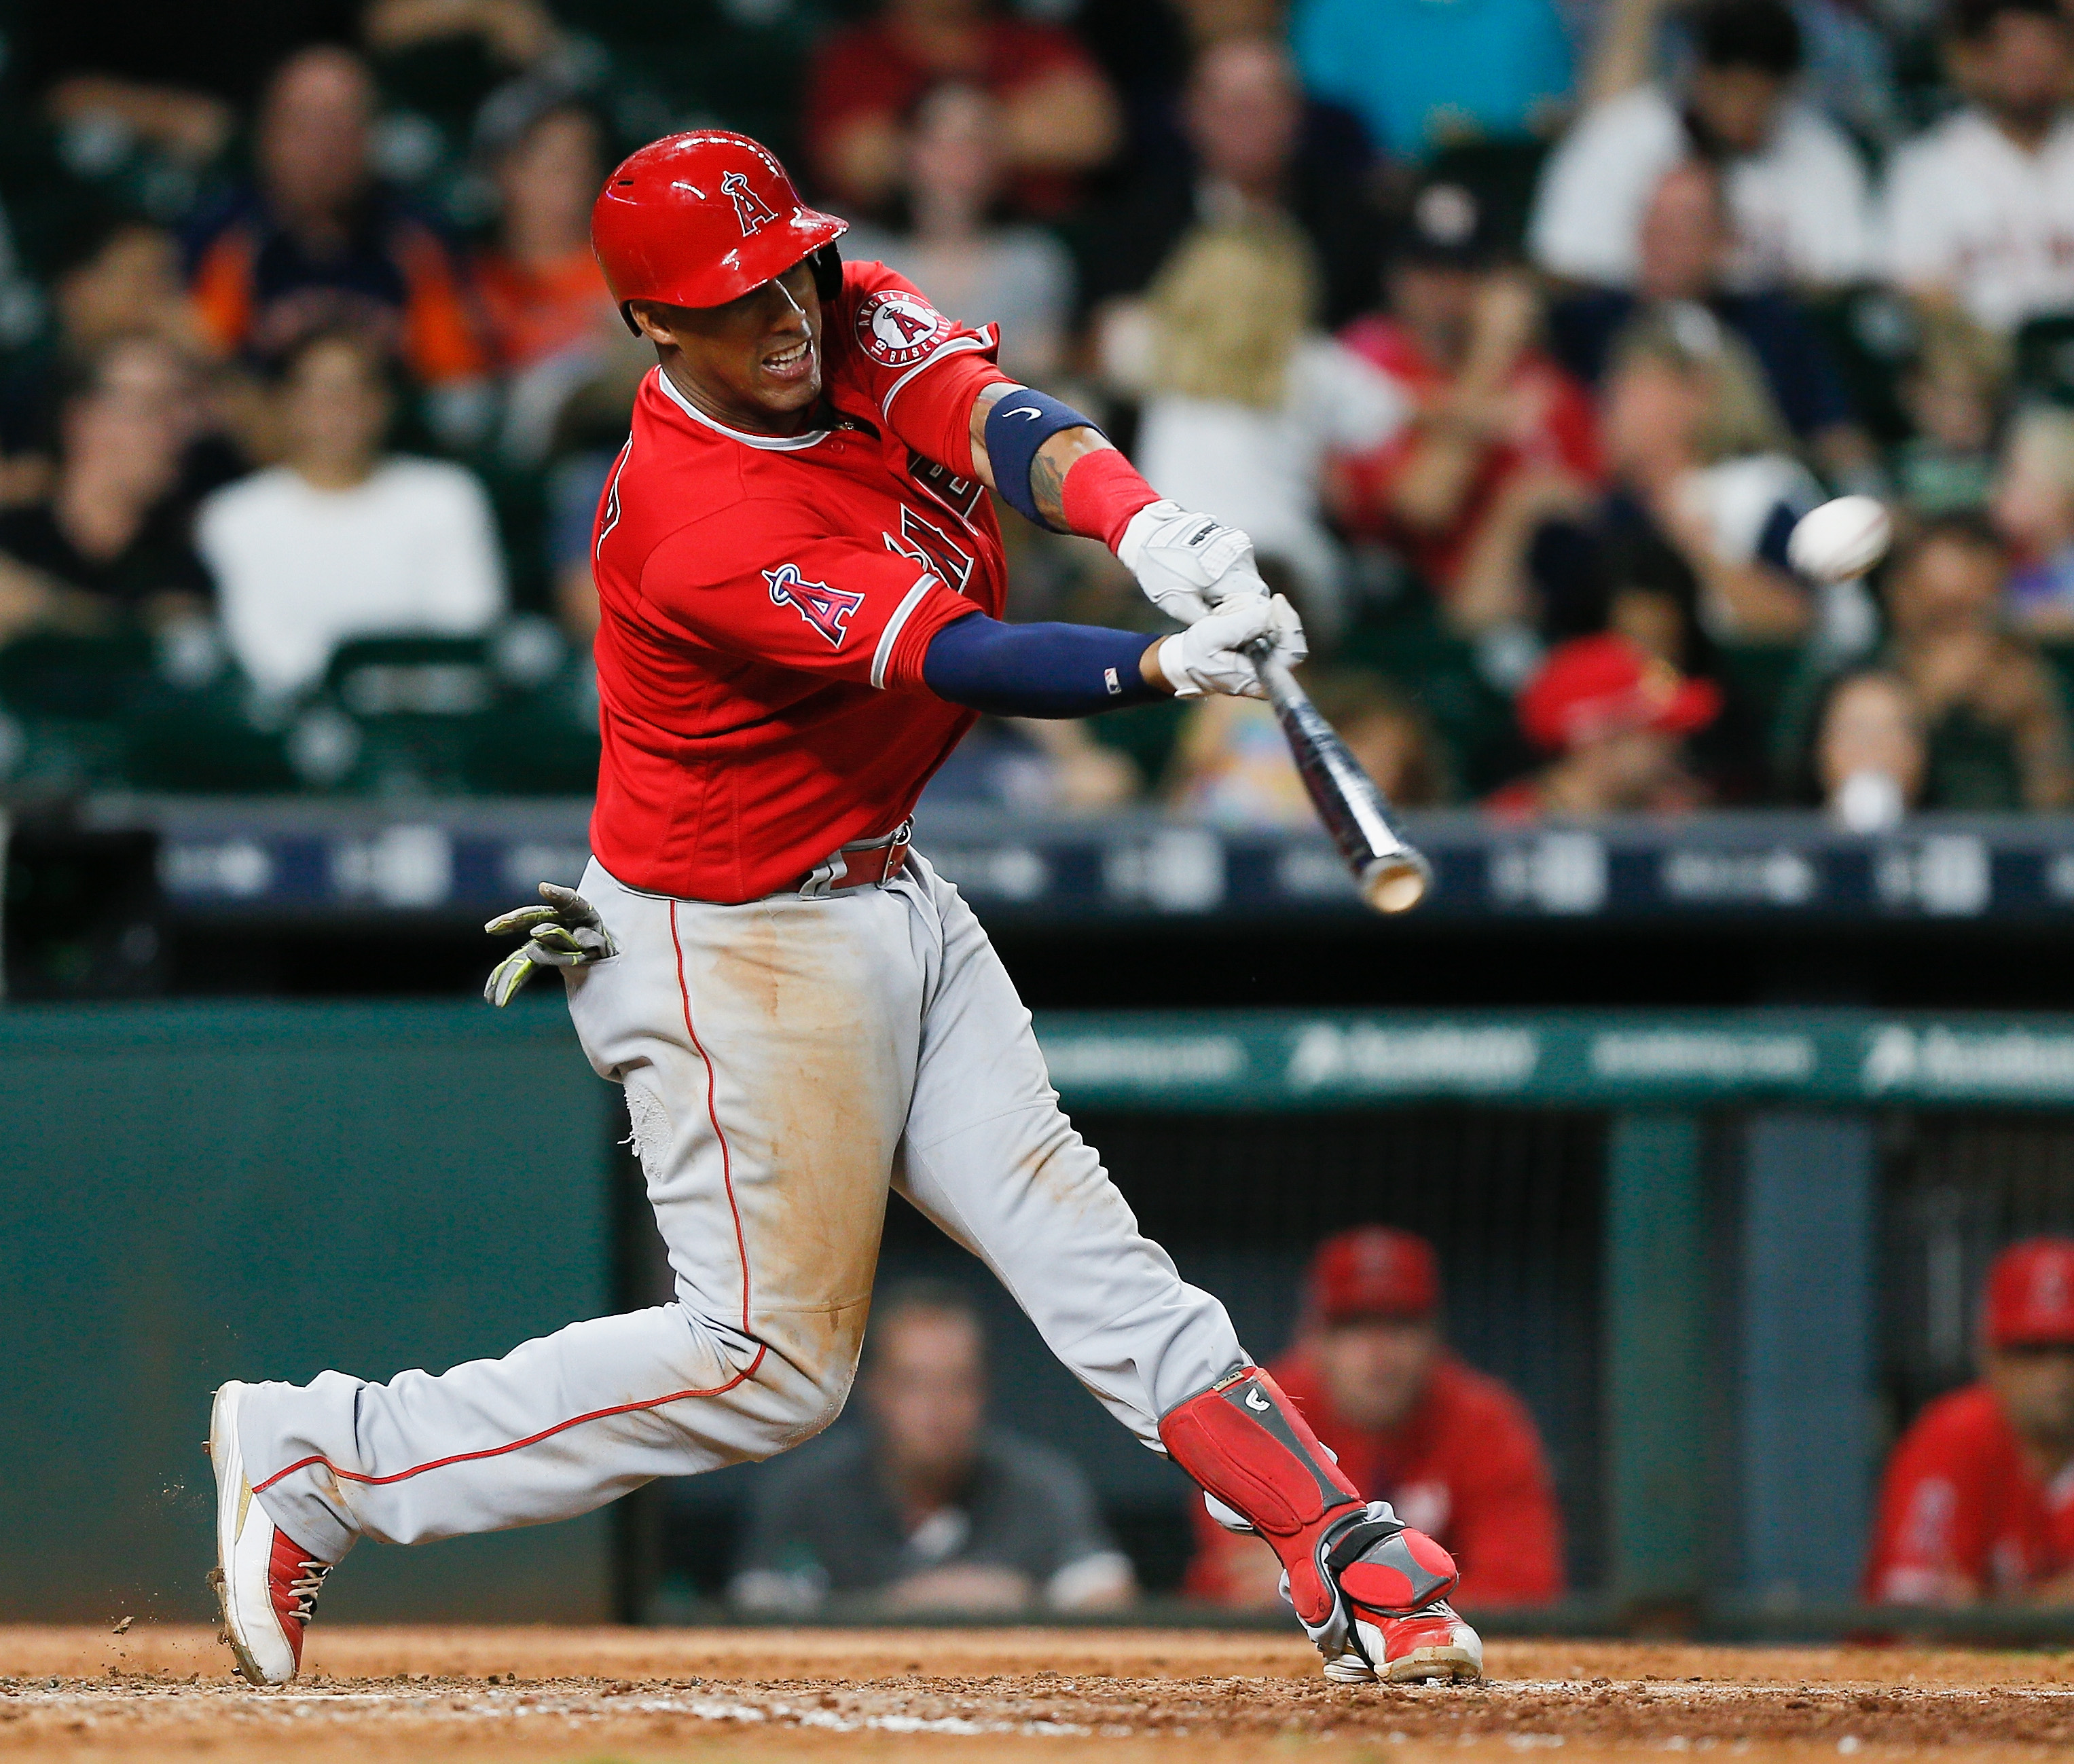 Fantasy Baseball: Is There Any Upside to Yunel Escobar?